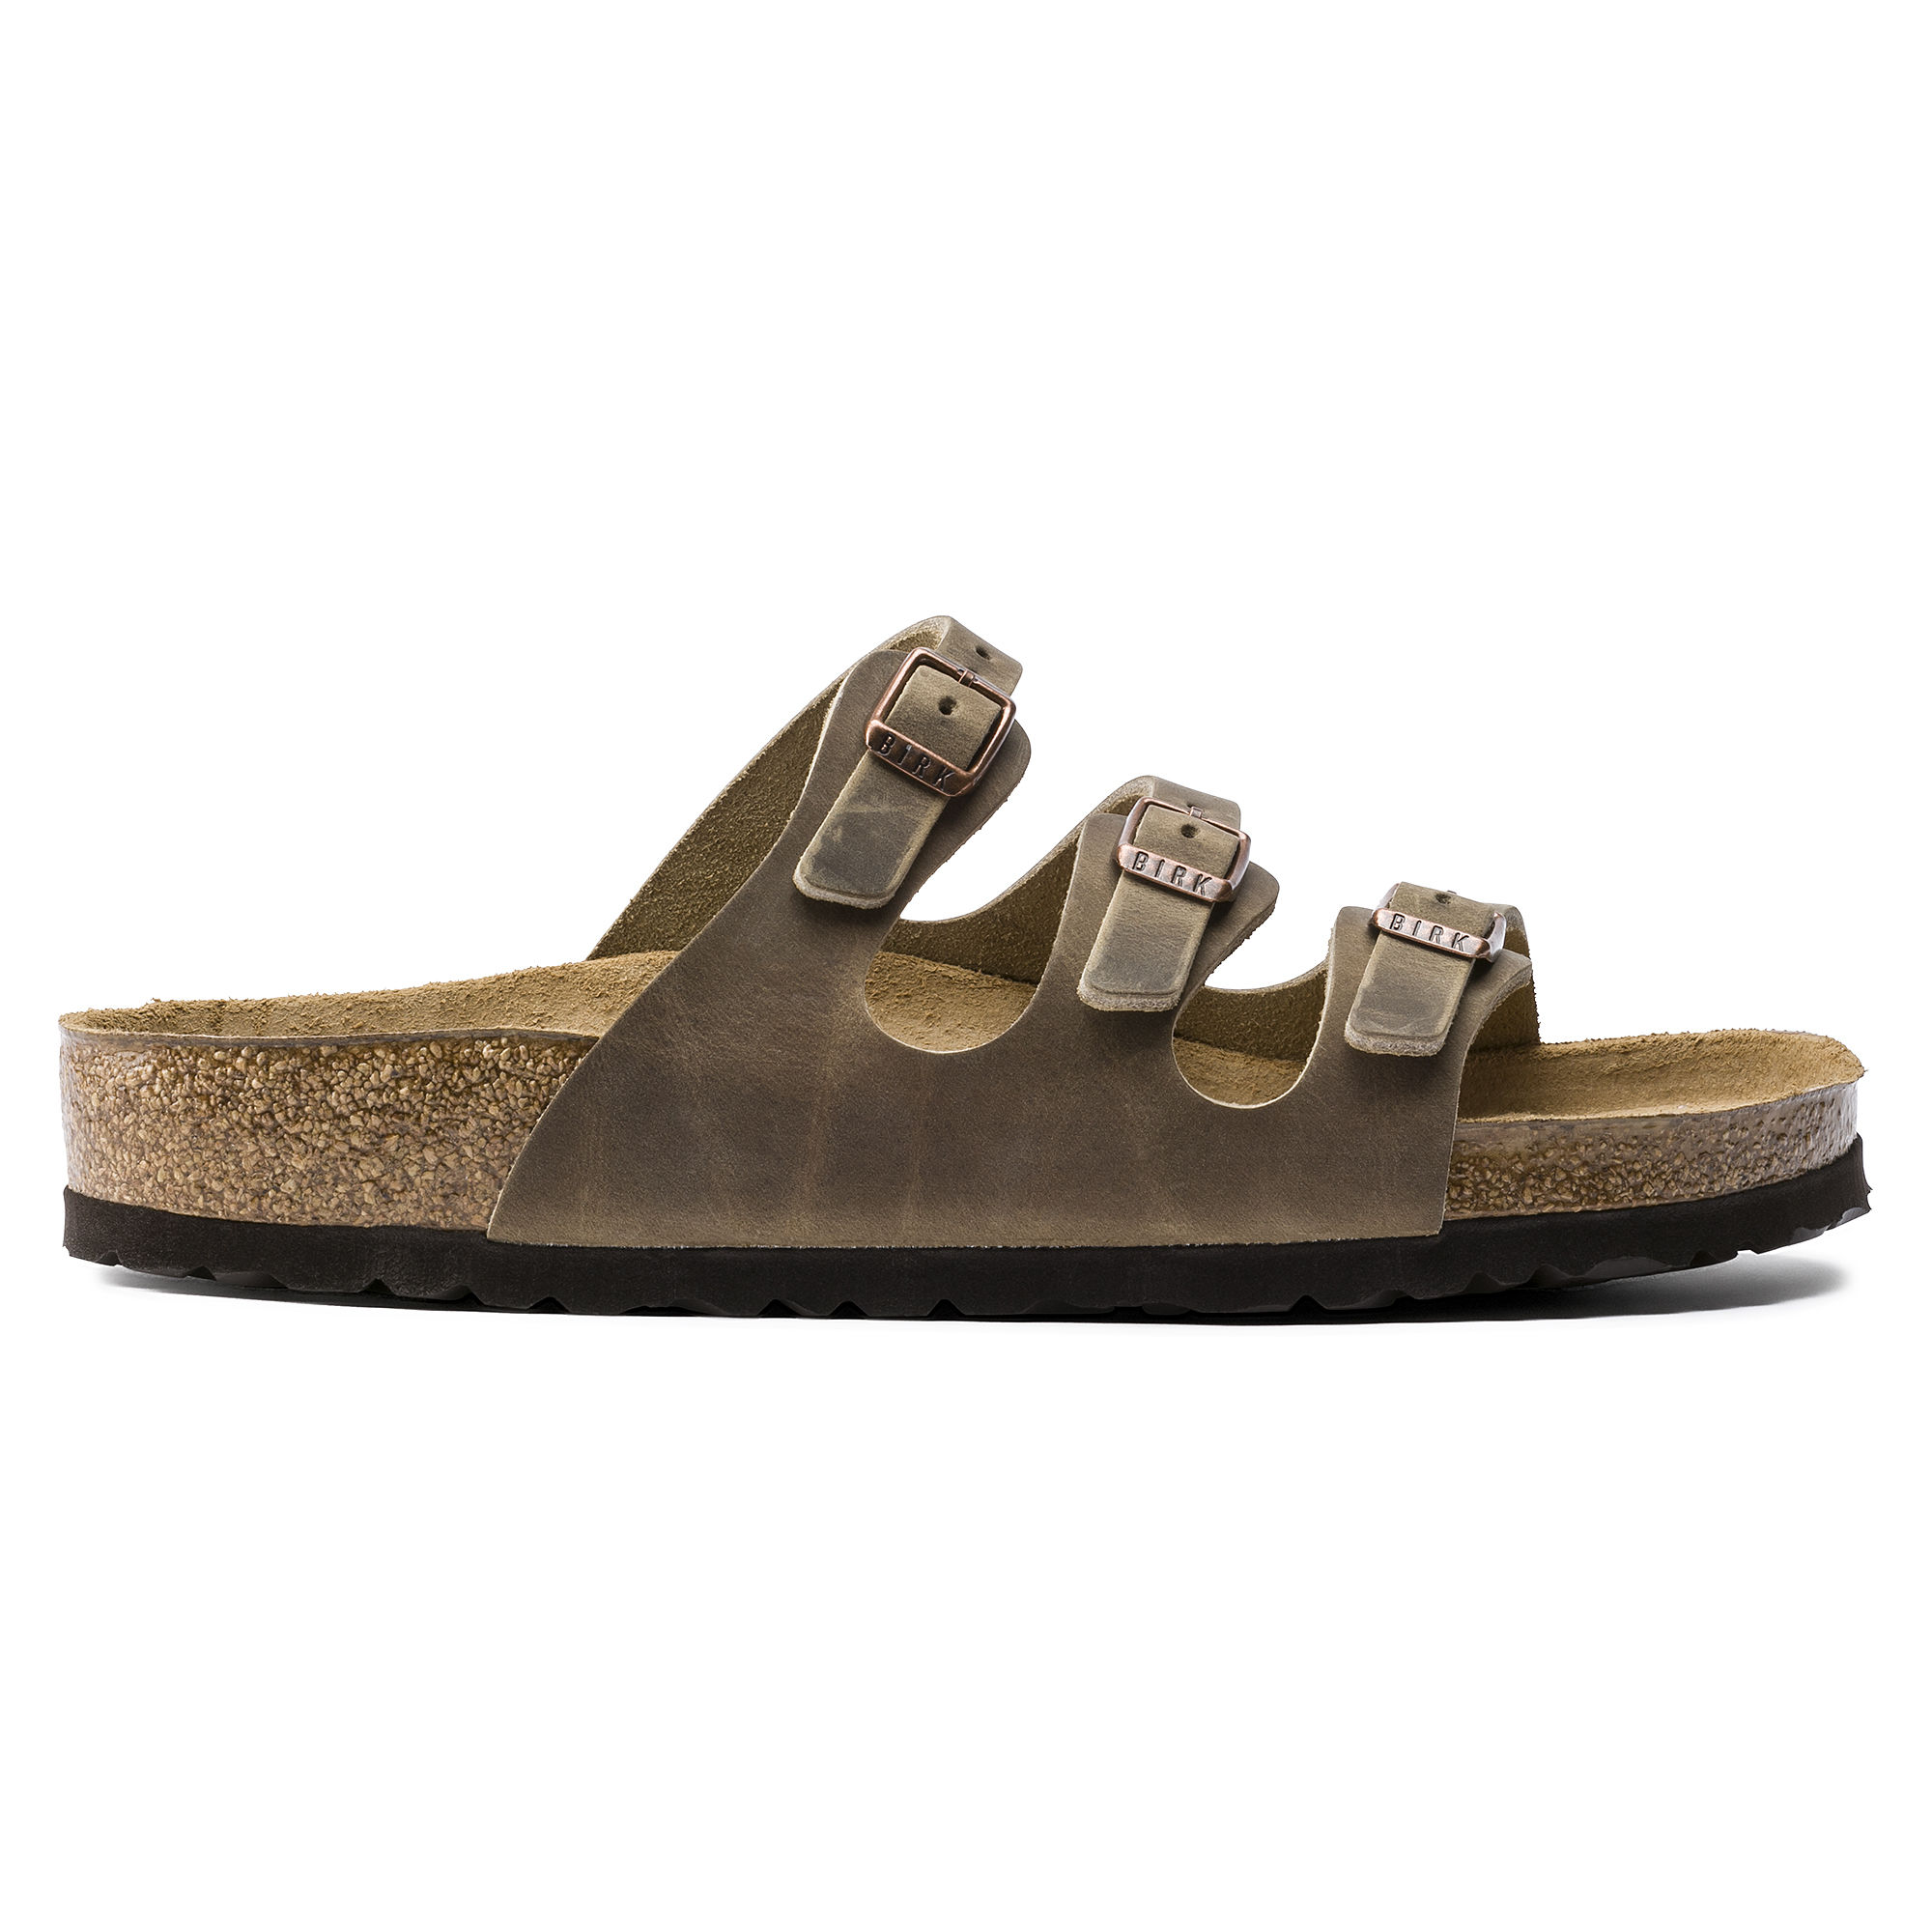 2c54b3f58 Birkenstock Florida Soft Footbed Oiled Leather Sandals - Women's w/ Free  Shipping — 5 models